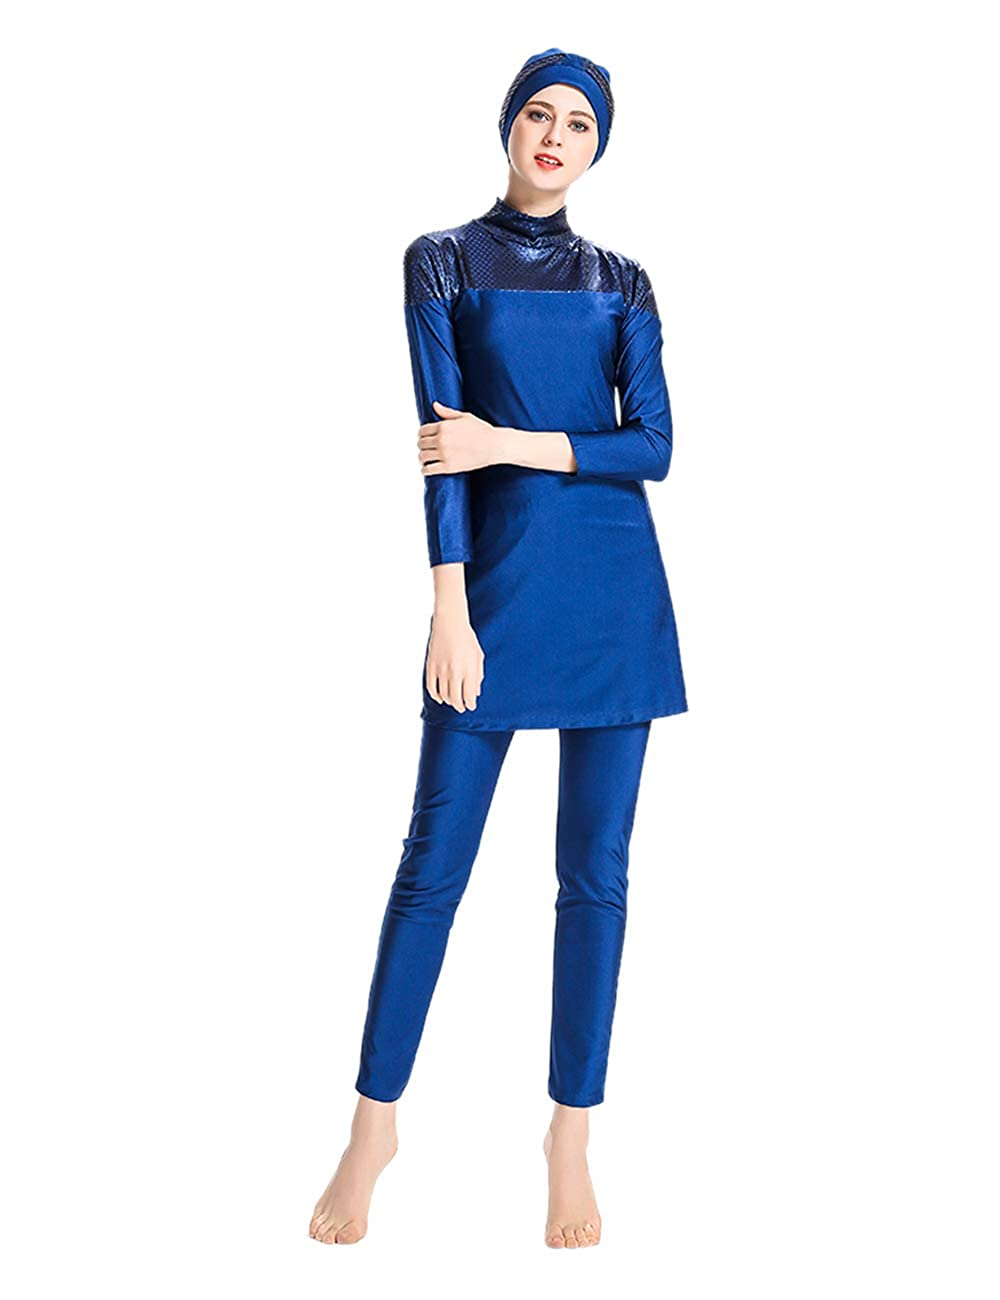 e6aaa87d491a besbomig Muslim Swimwear Women's Full Length Swimsuit - Modest Swimsuit  Beachwear Islamic Burkini with Hijab Ladies Swimming Costume 3pcs Surfing  Suit: ...